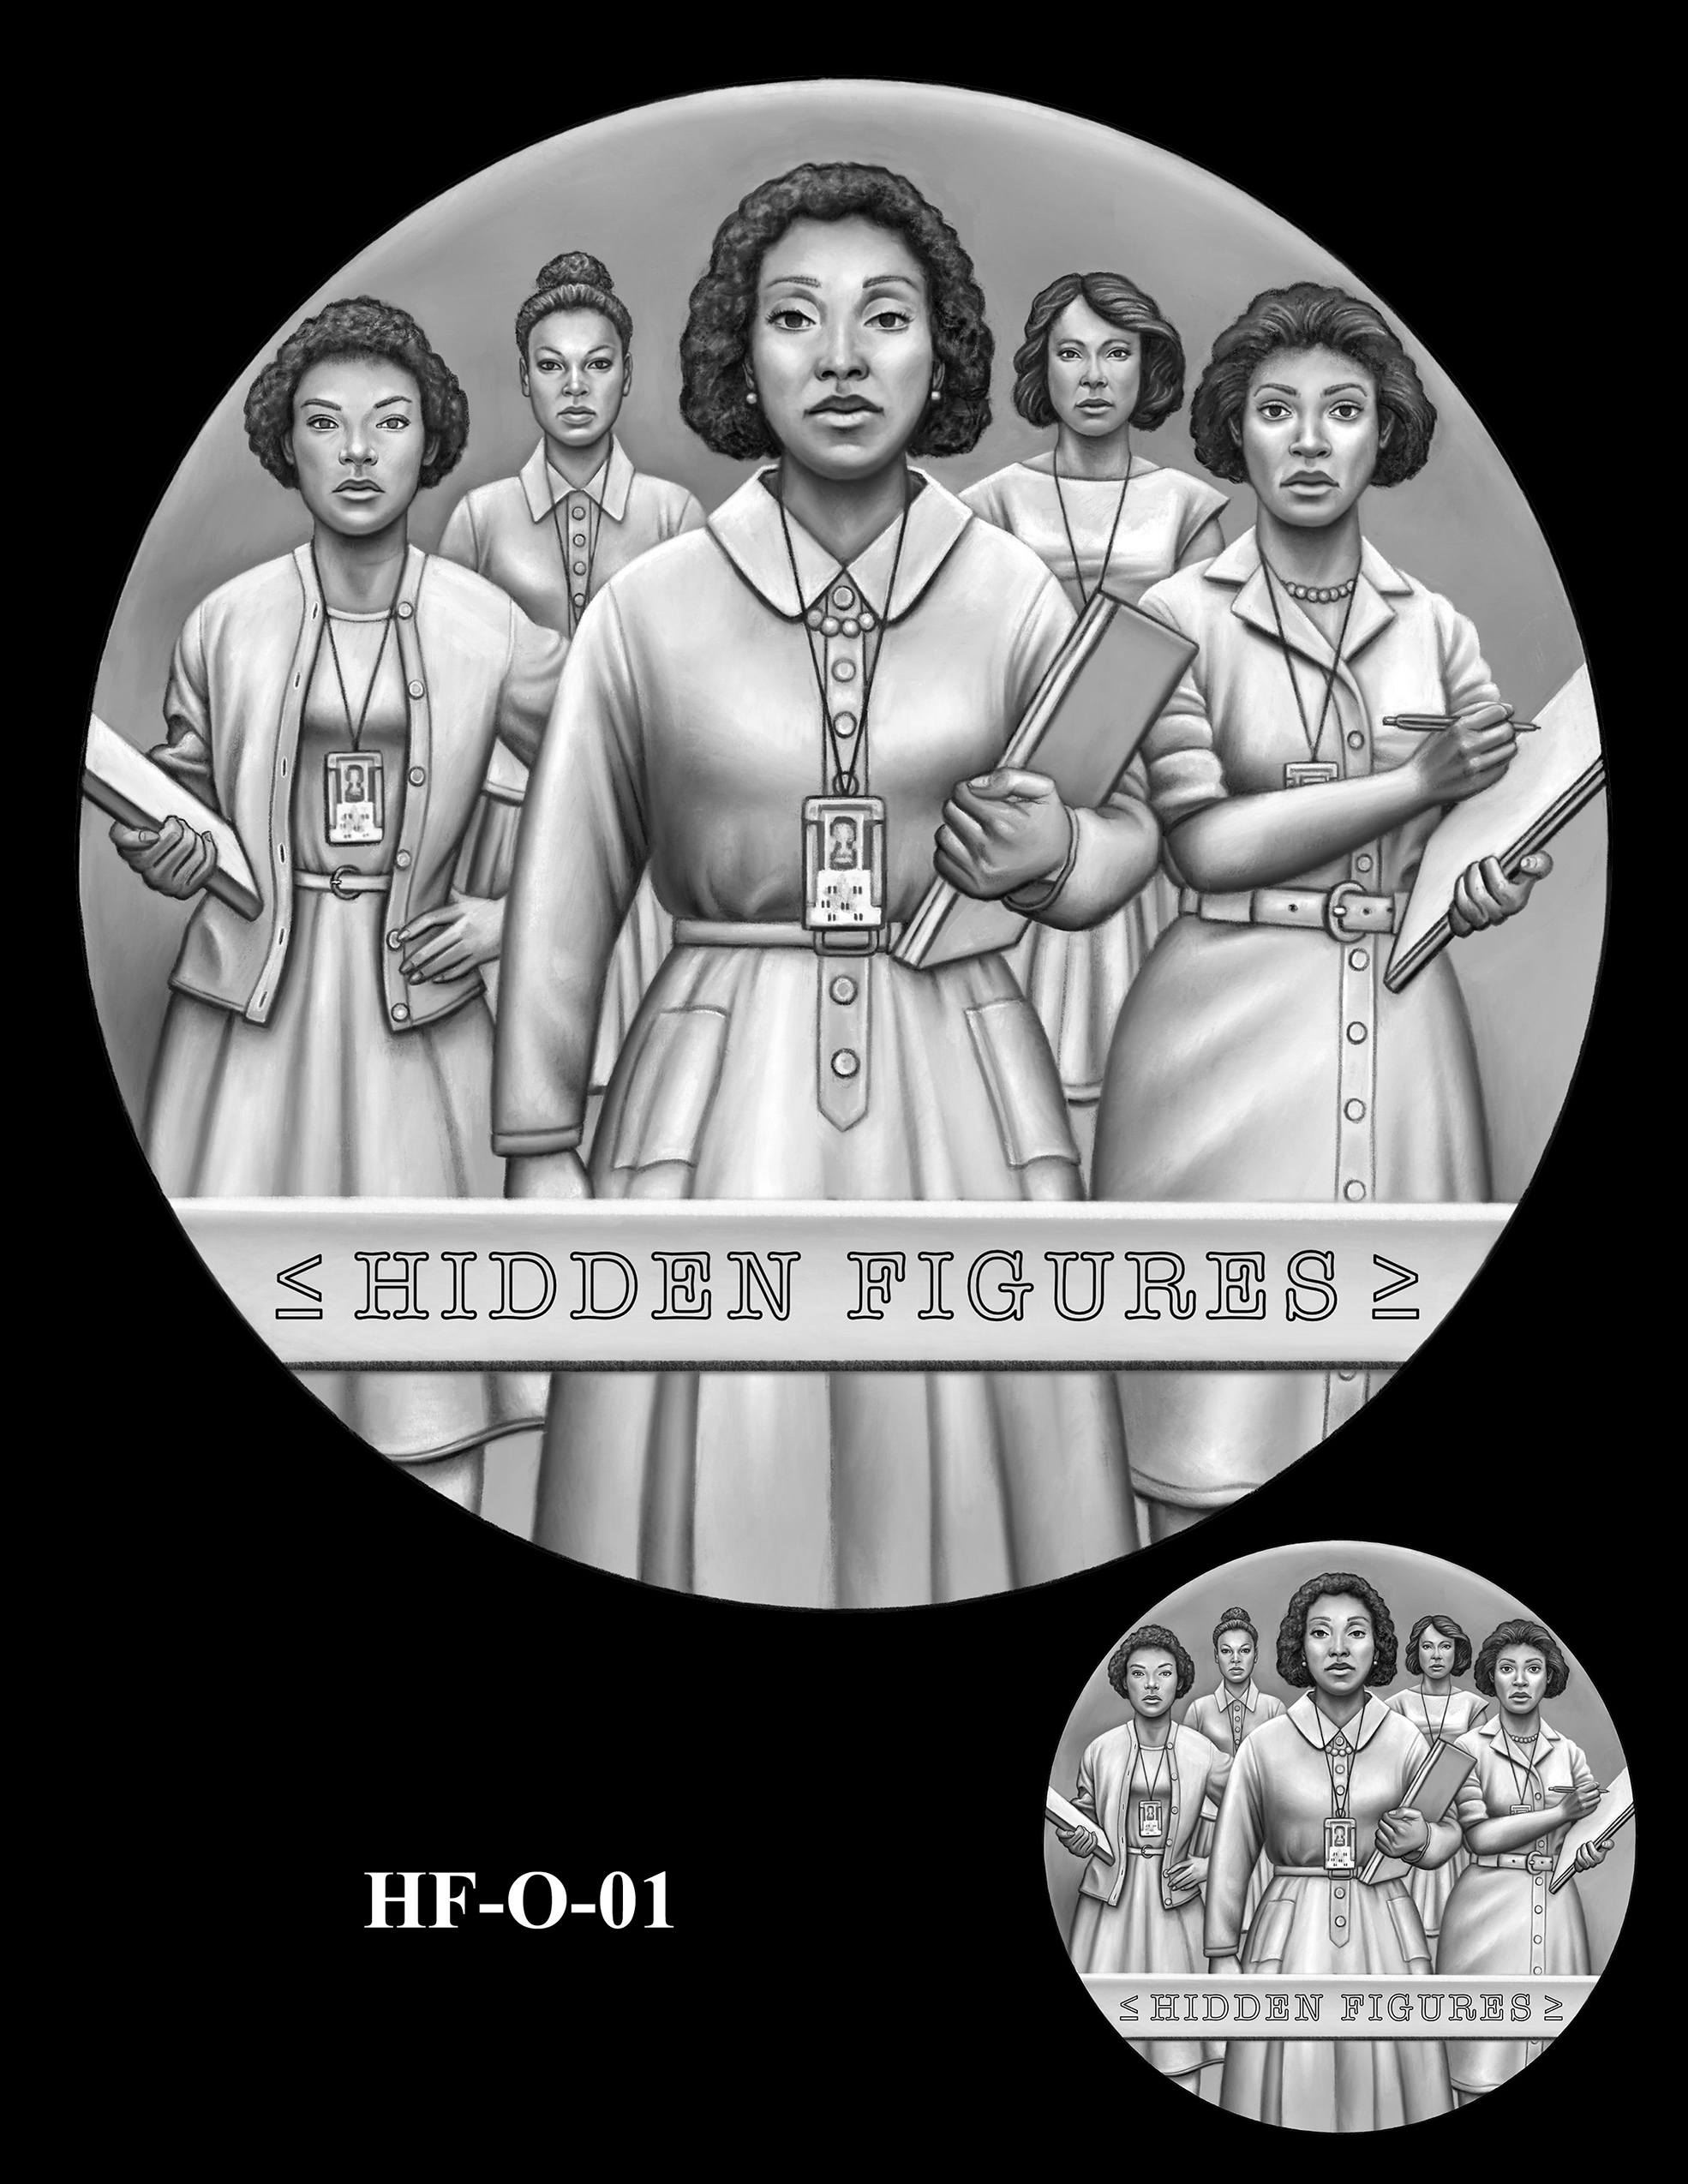 HF-O-01 -- Hidden Figures Group Congressional Gold Medal